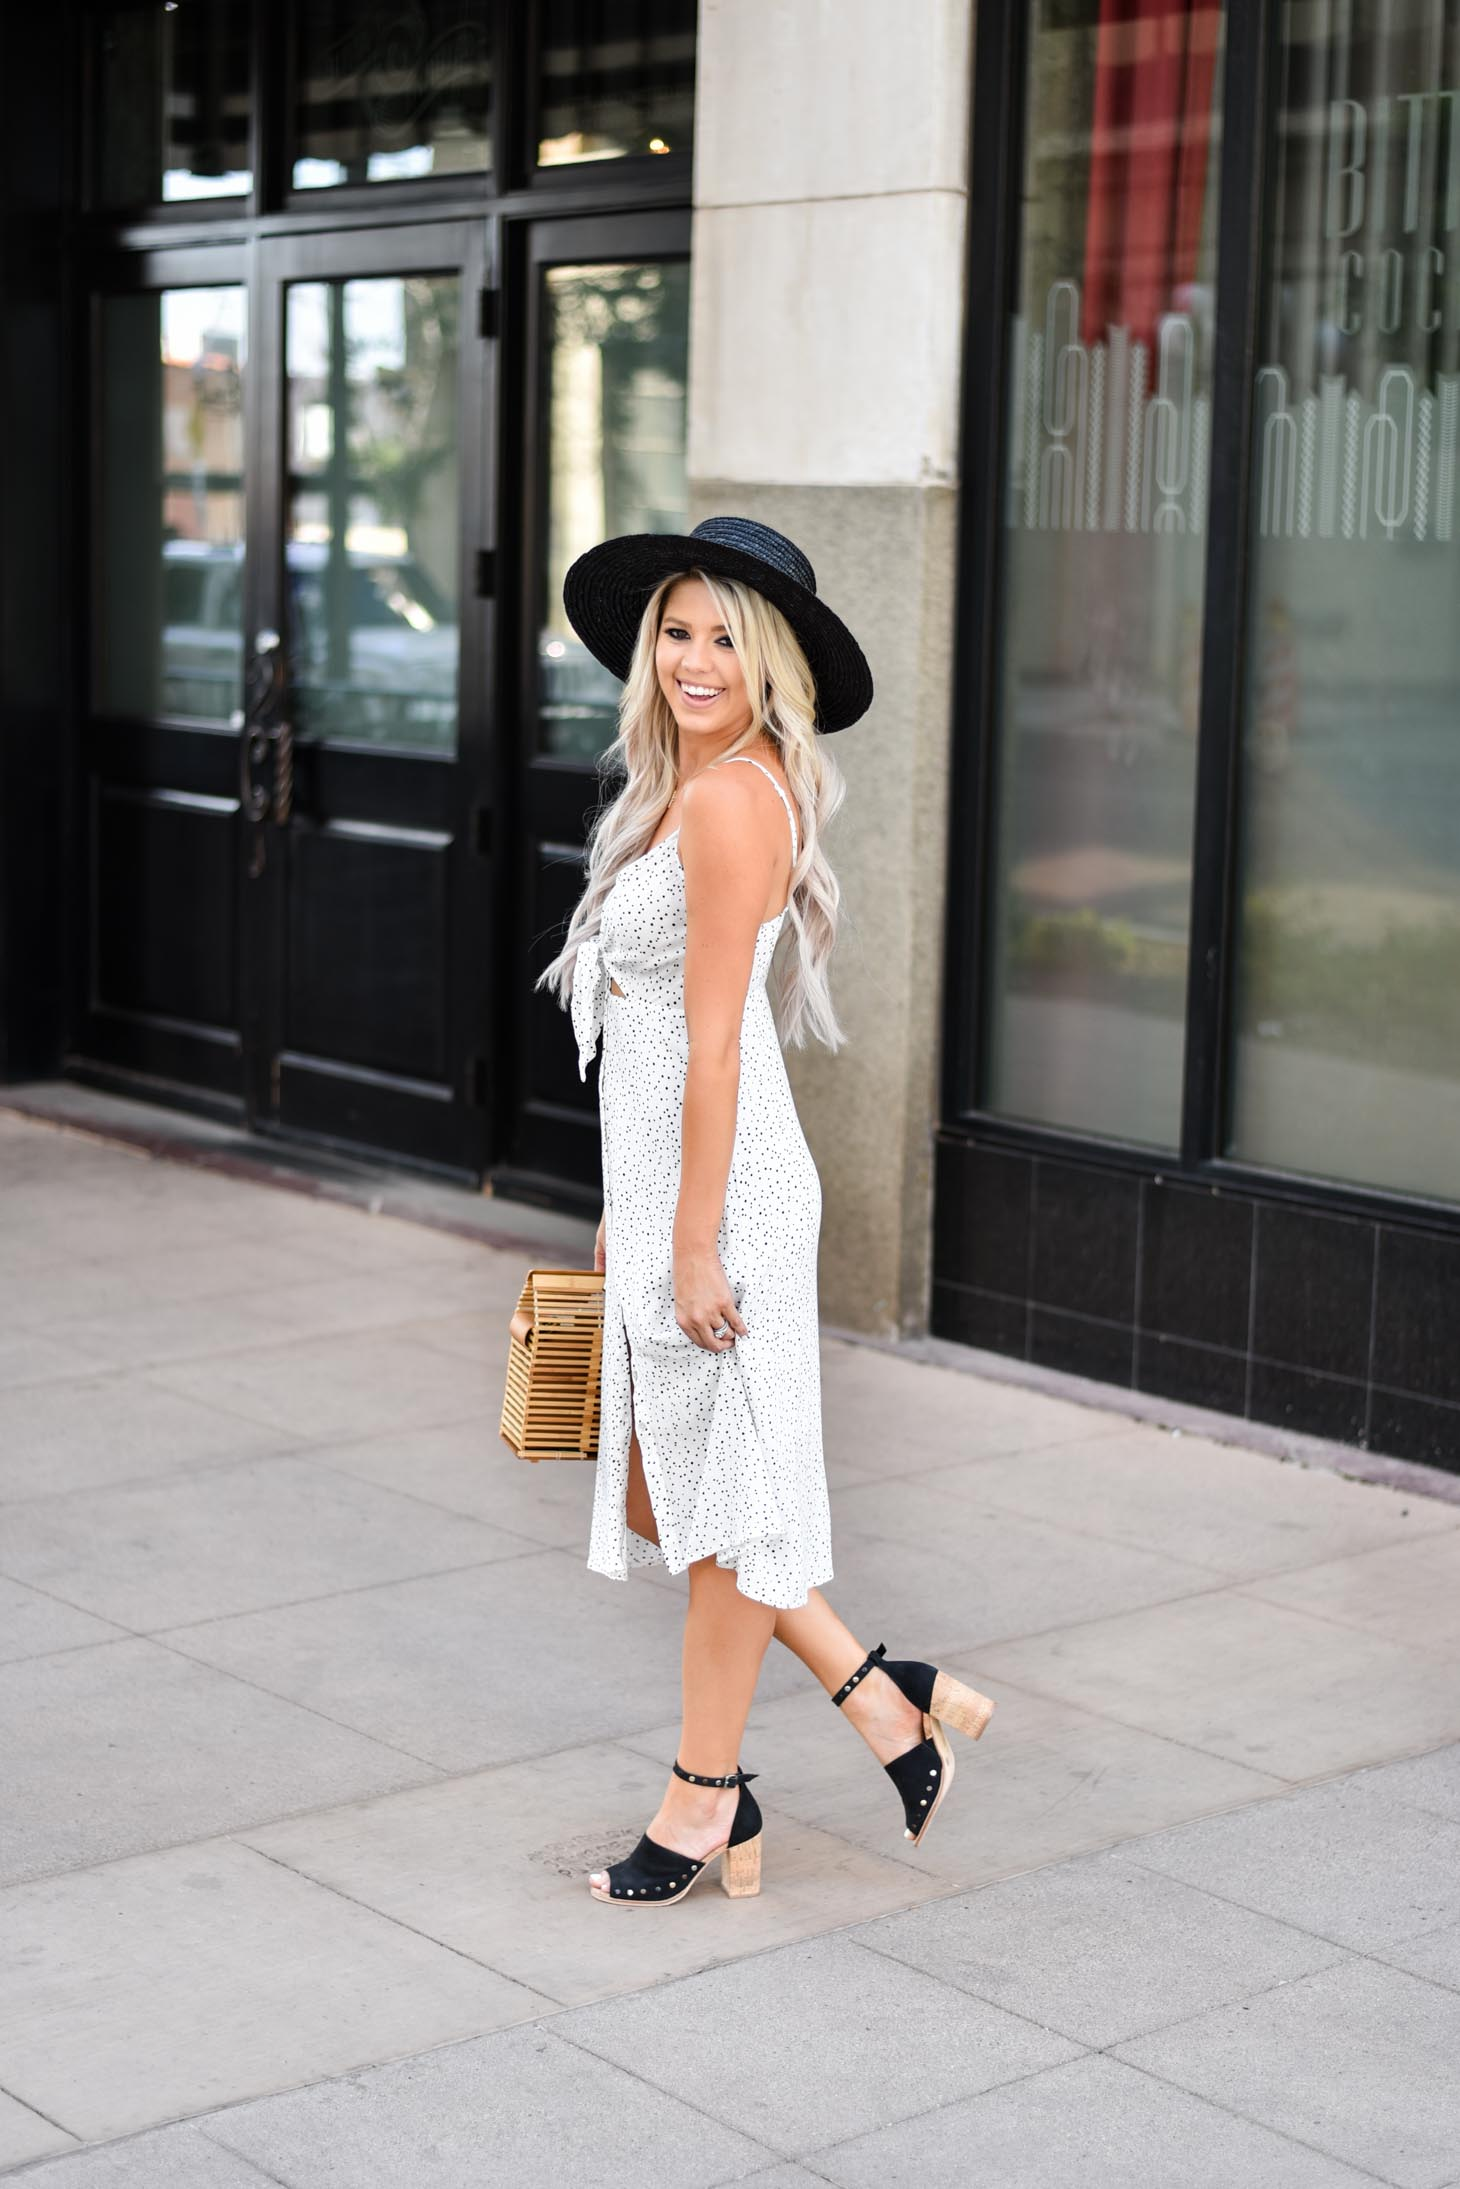 Erin Elizabeth of Wink and a Twirl shares the sweetest polka dot dress from Shop Entourage in Downtown Phoenix